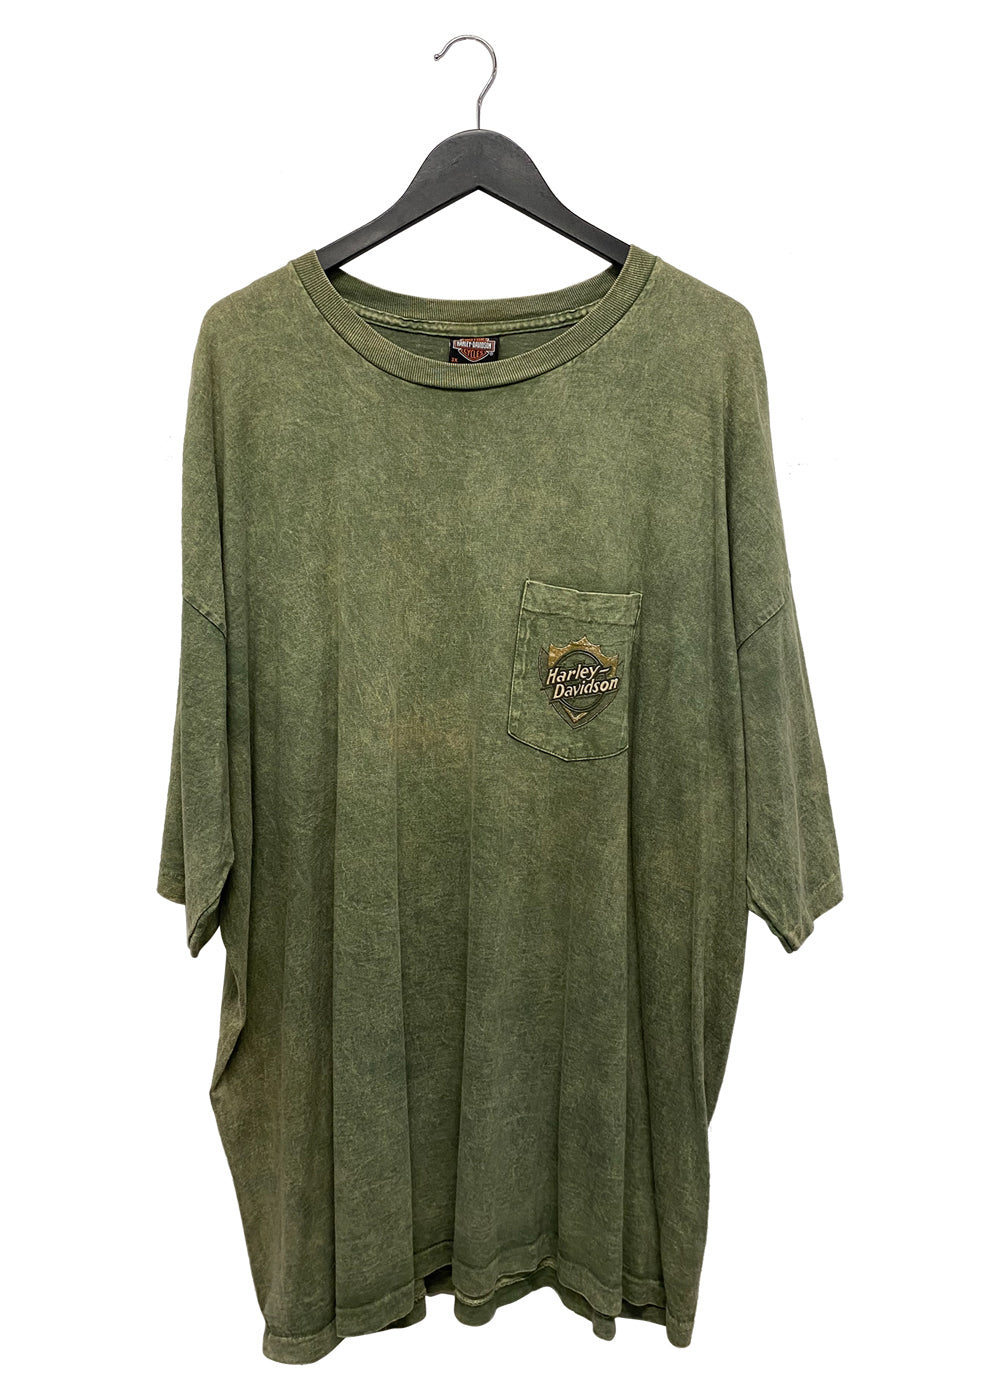 PINK FLOYD 'DARK SIDE OF THE MOON' RARE TEE